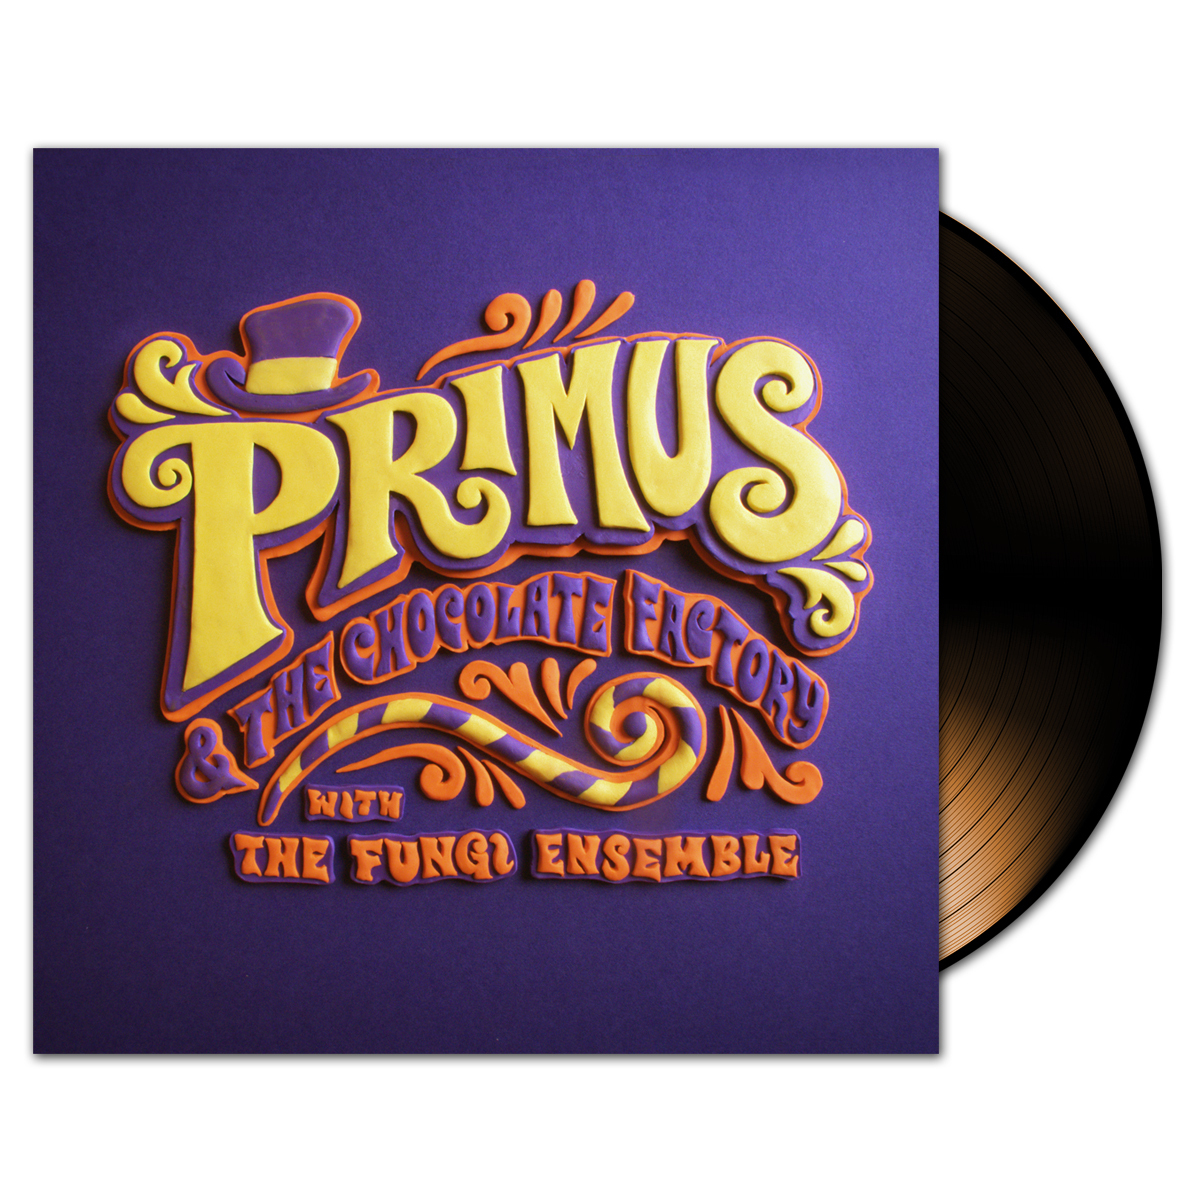 Primus and the Chocolate Factory with the Fungi Ensemble Vinyl